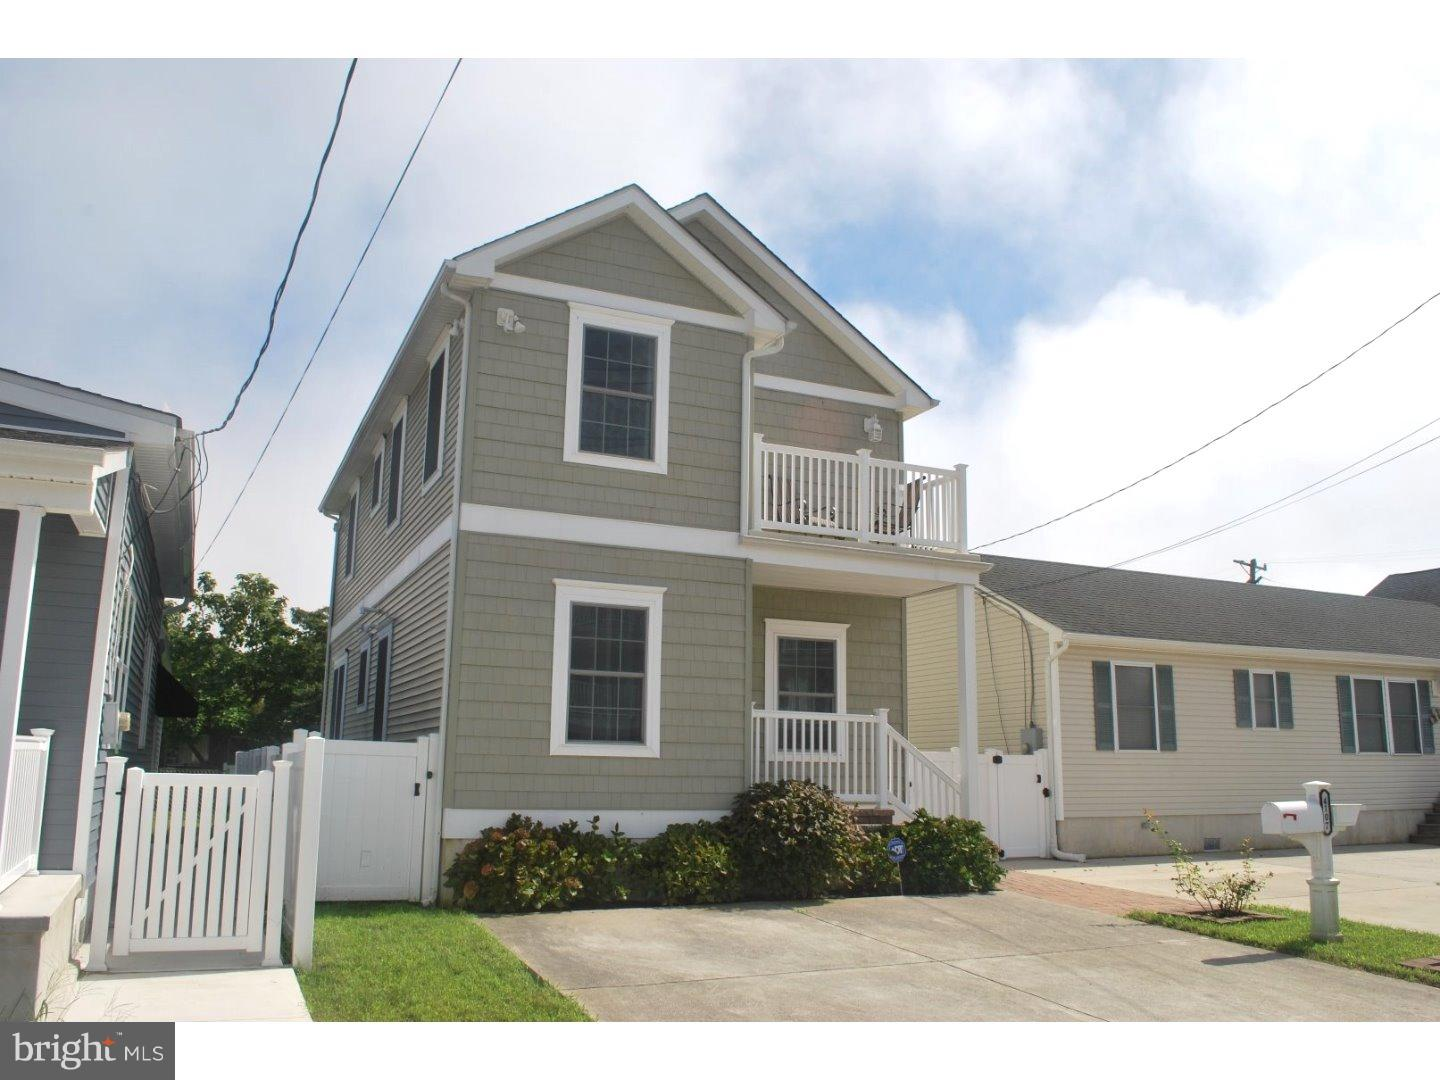 4107 ARCTIC AVENUE, WILDWOOD, NJ 08260